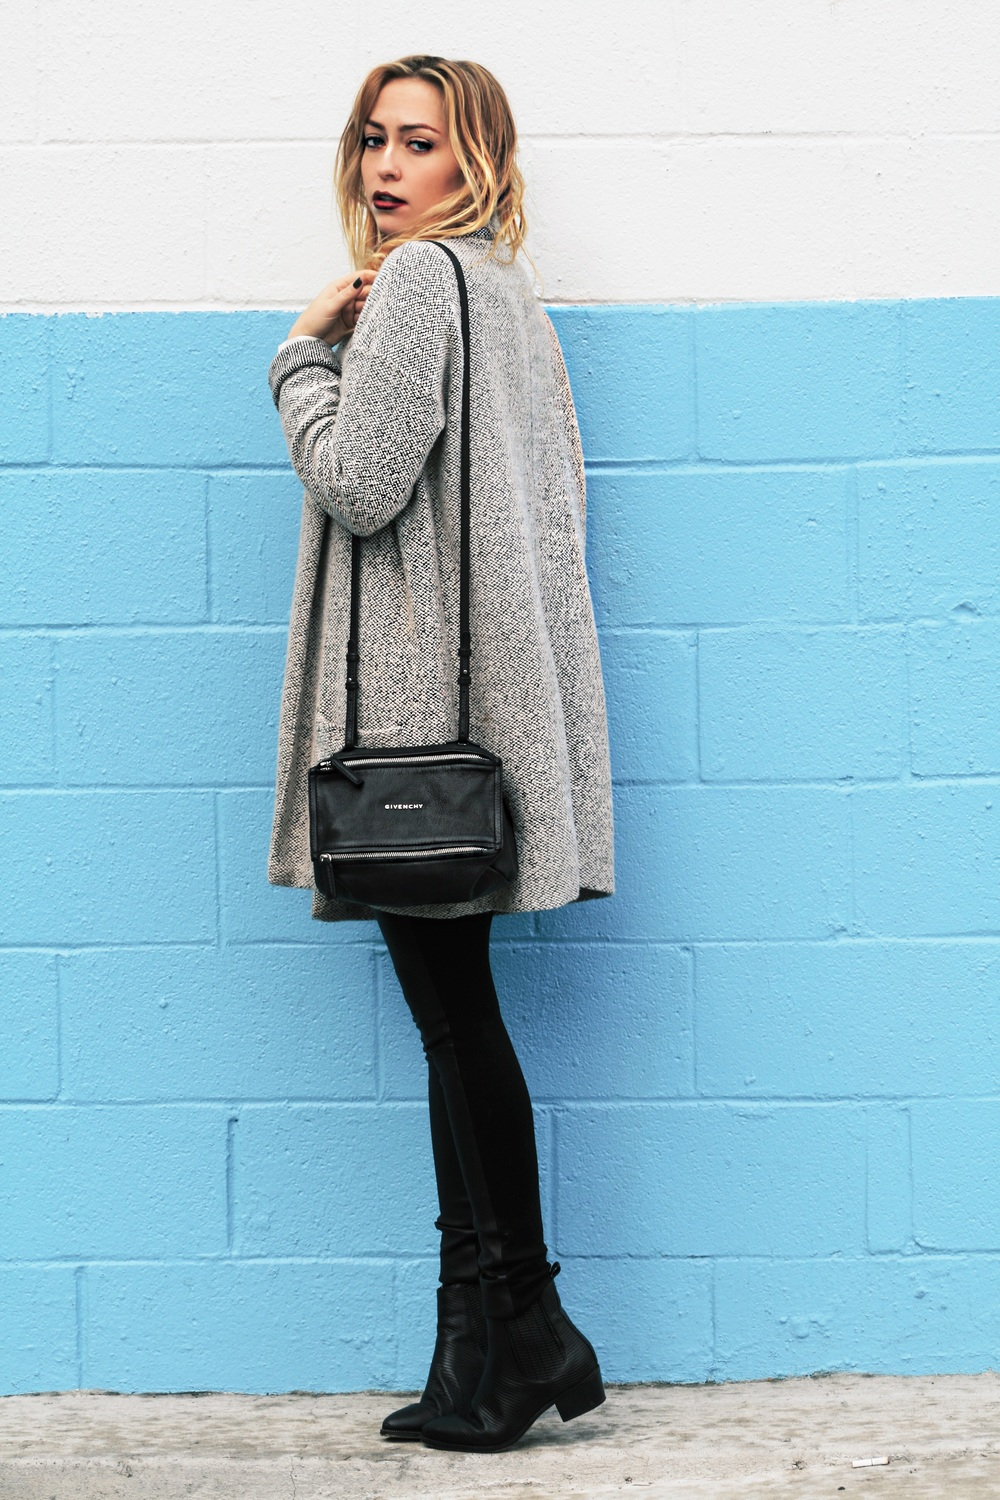 Sweater - Forever 21 | Shirt - Equipment | Pants - Club Monaco | Boots - Senso | Bag - Givenchy || photos by Mandy Mooring